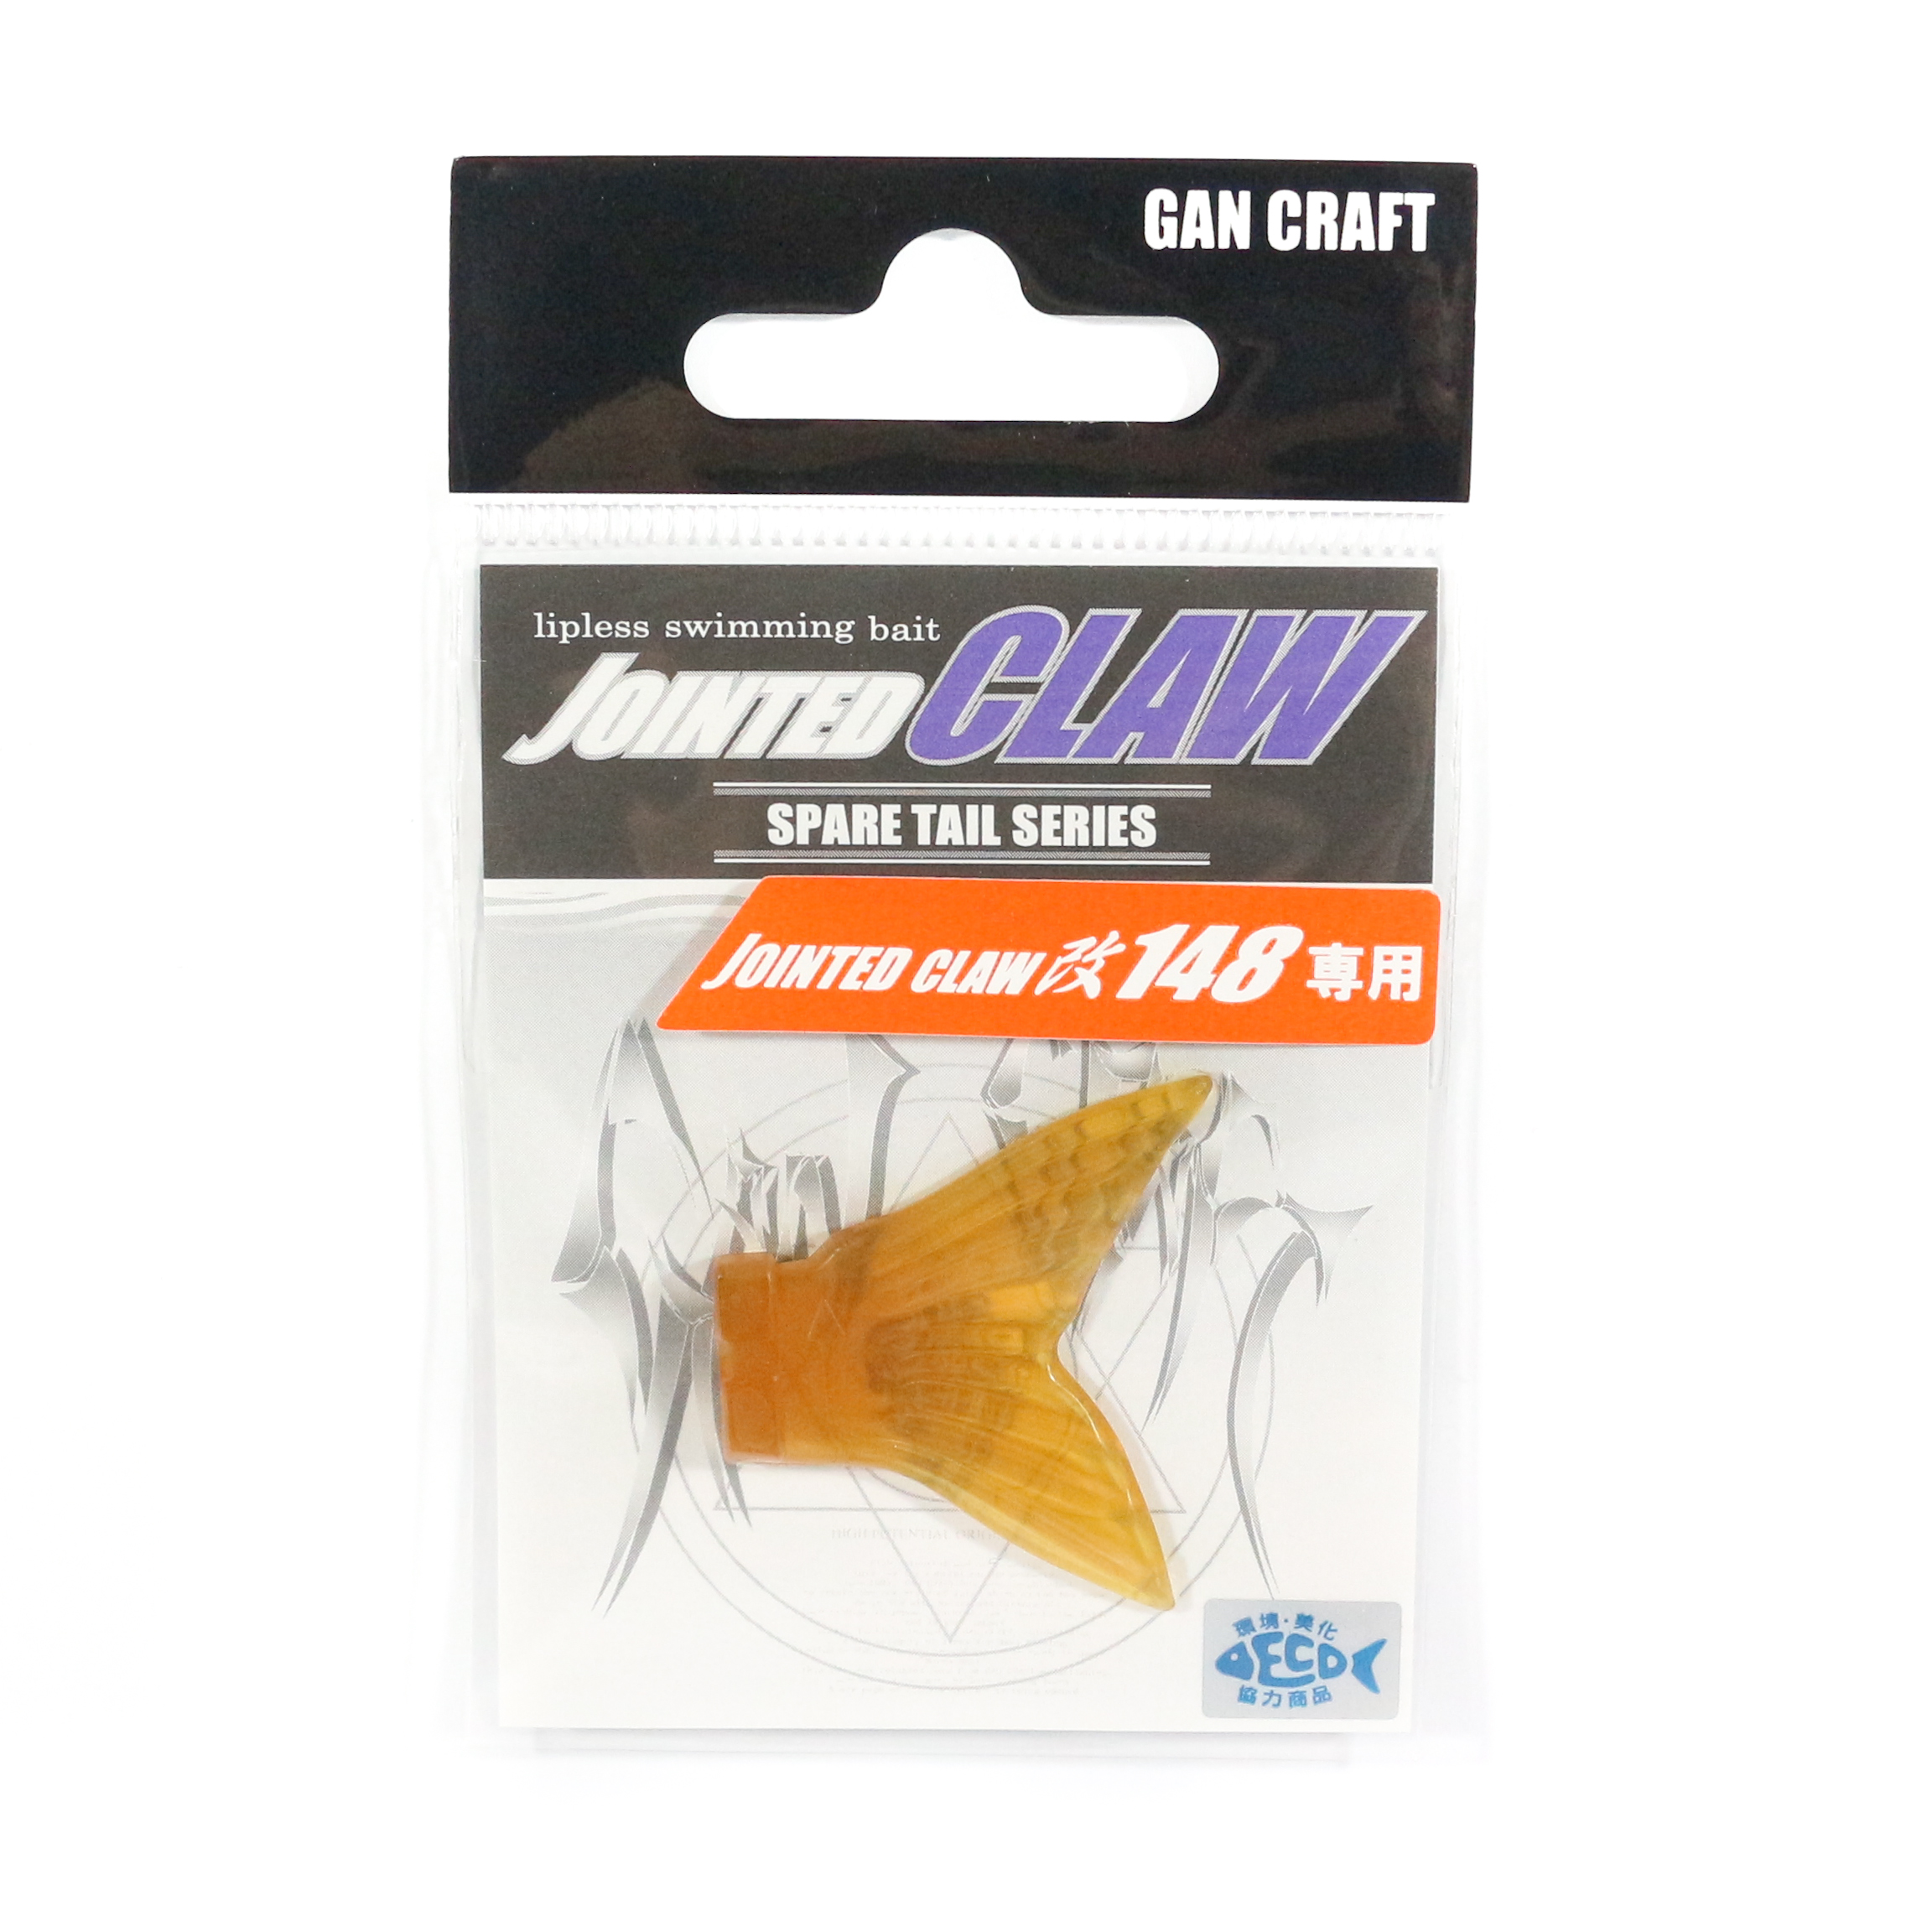 Gan Craft Jointed Claw 148 Spare Tail Normal 03 (2174)